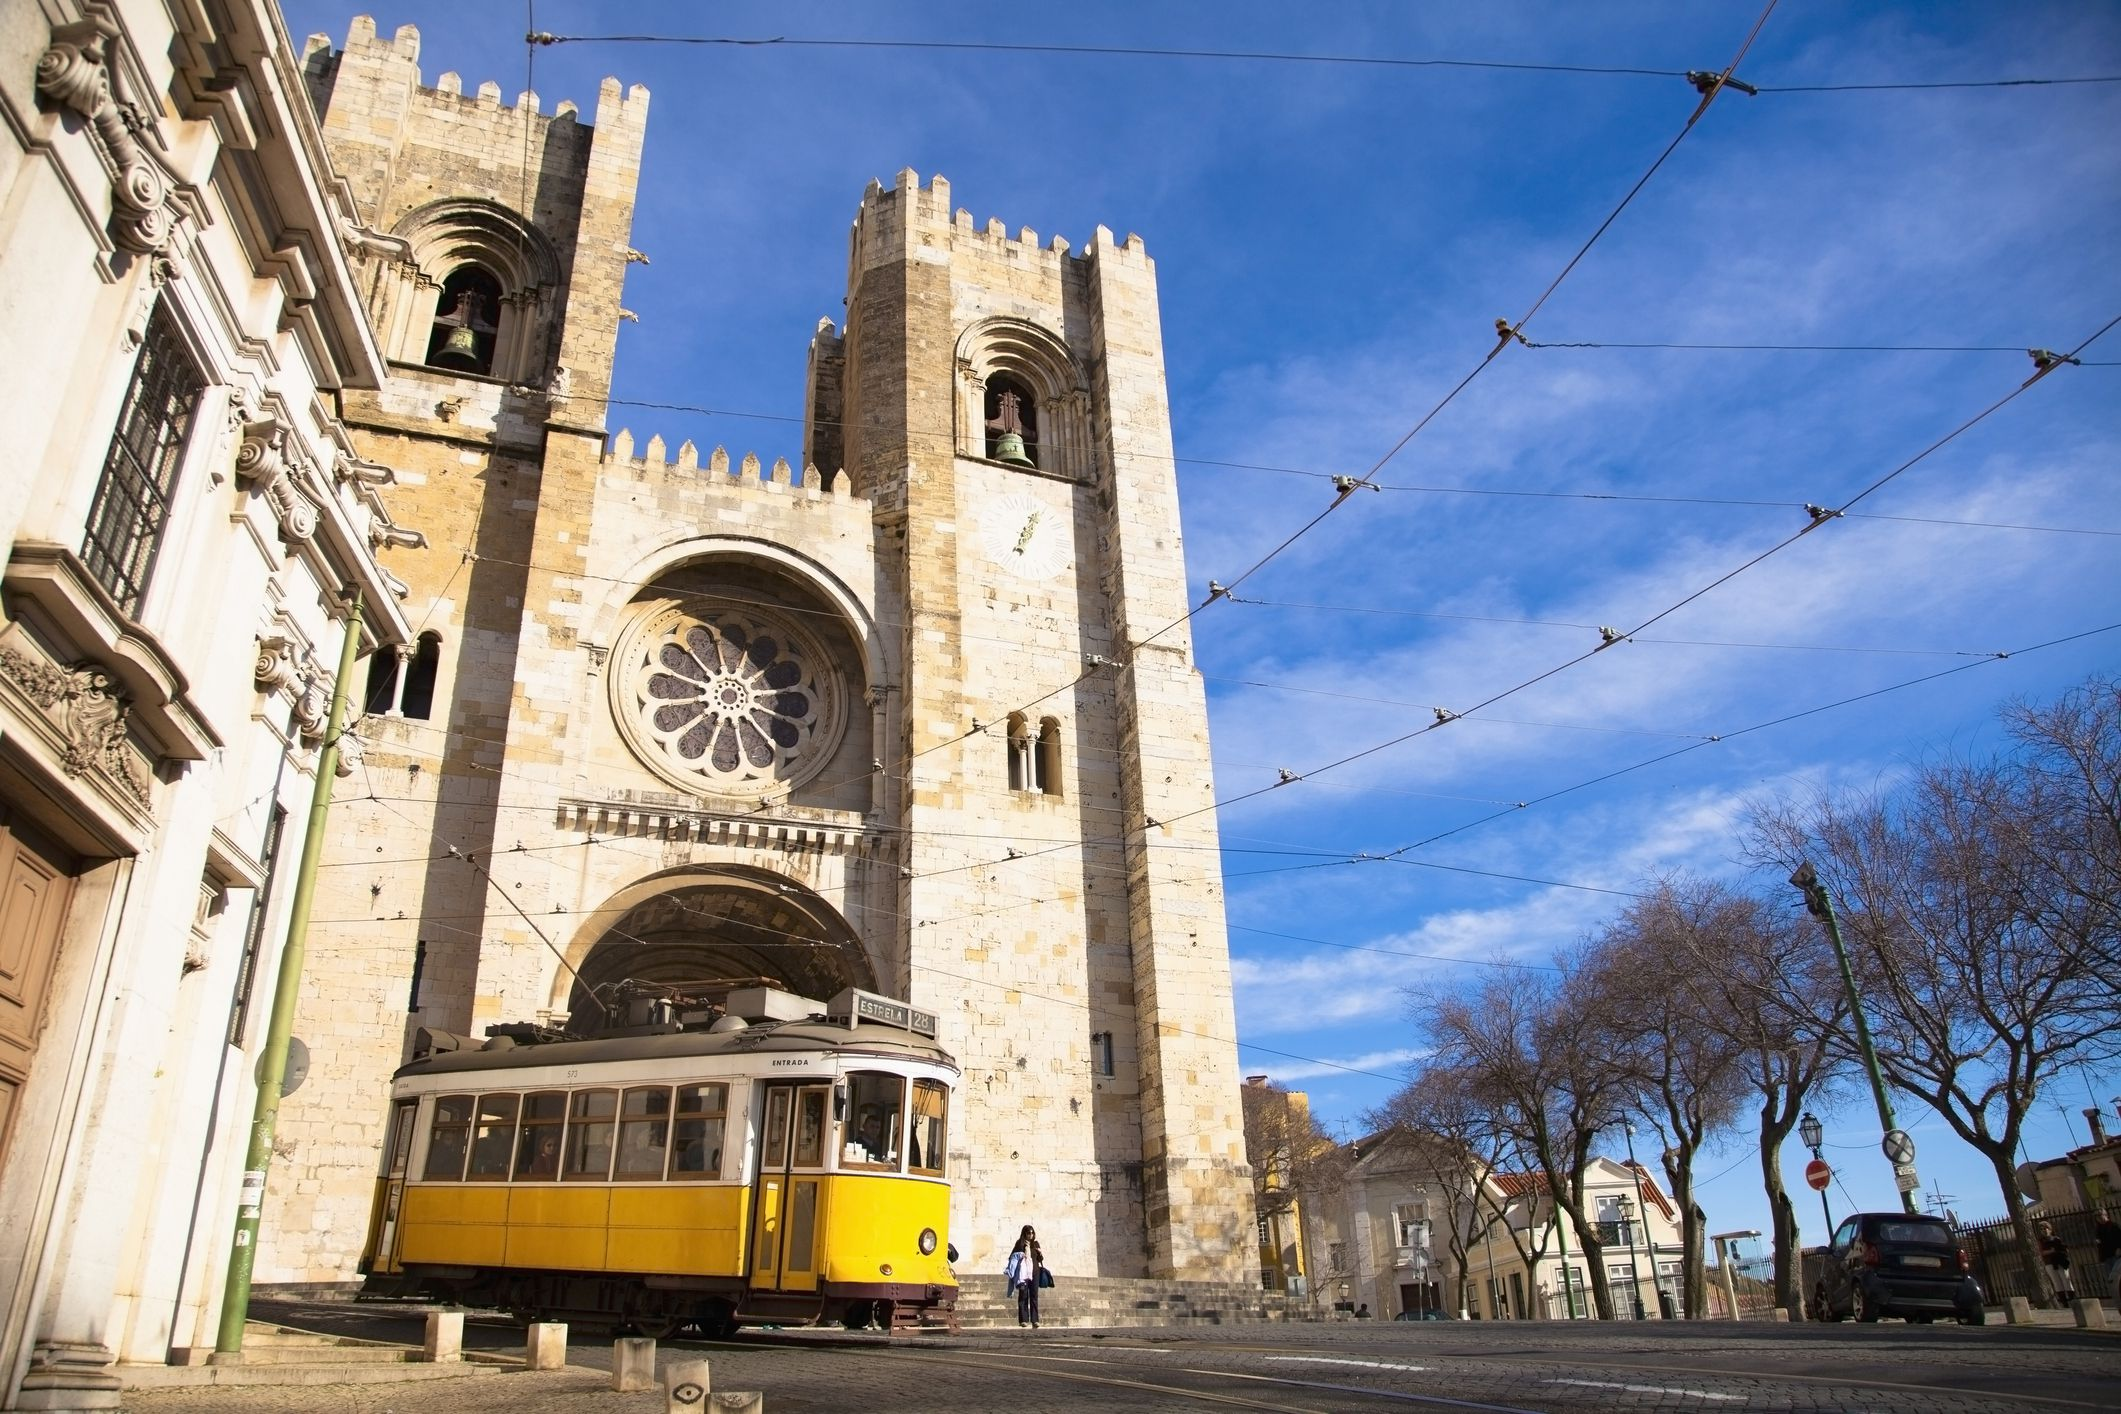 How to Ride the Tram in Lisbon